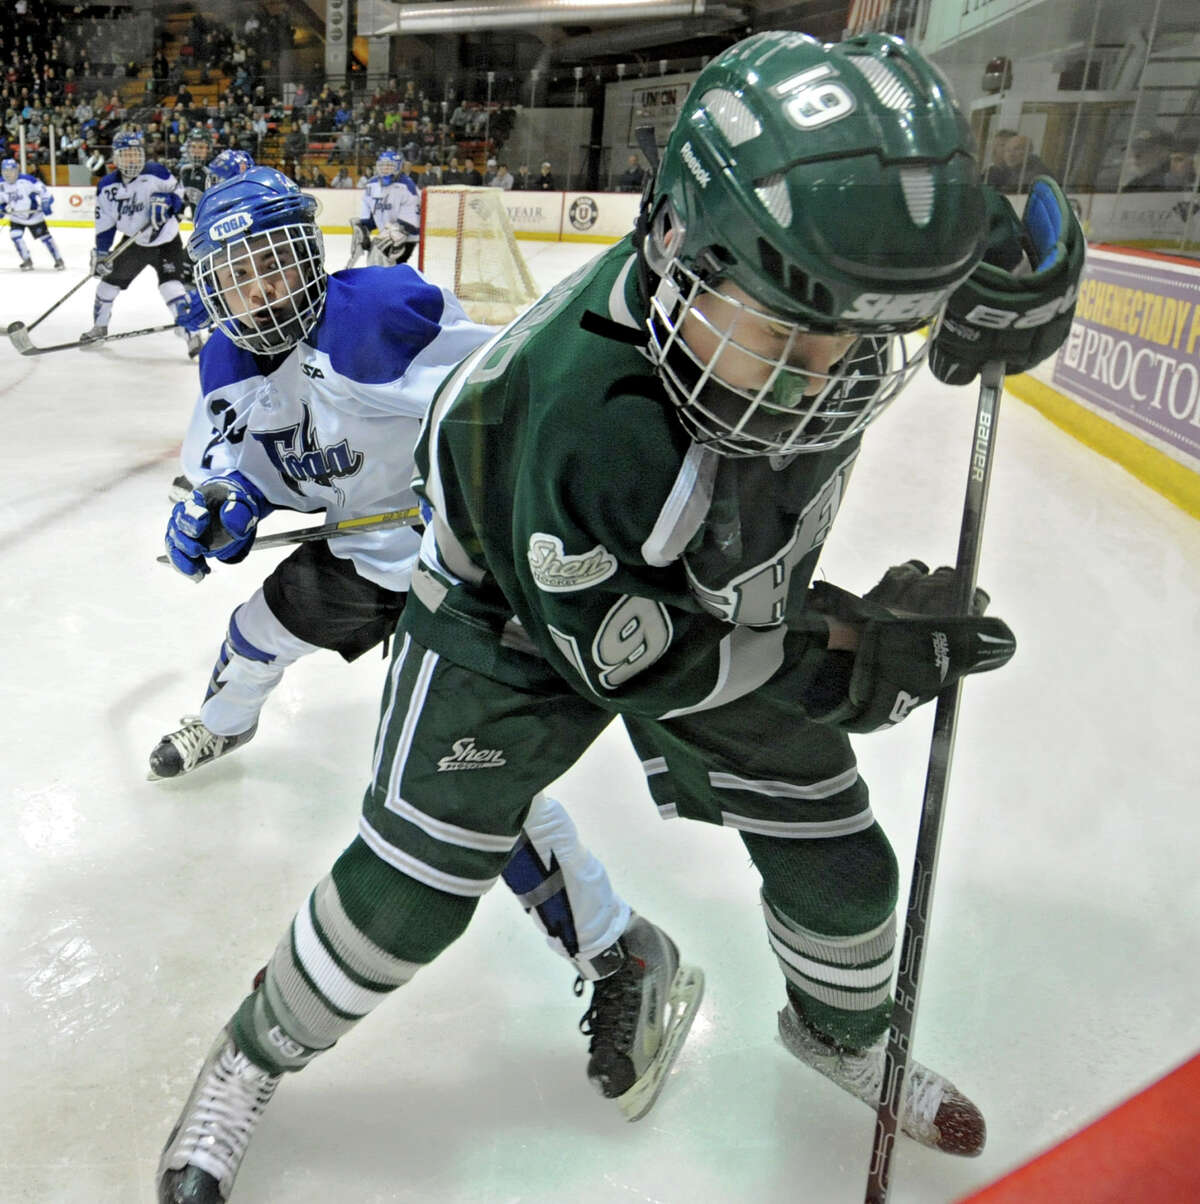 From left, Saratoga's Matt Klingbell battles for the puck with Shenendehowa' s Peter Russo during the section II division I hockey championship game at Union College on Thursday Feb. 21, 2013 in Schenectady, N.Y. (Lori Van Buren / Times Union)